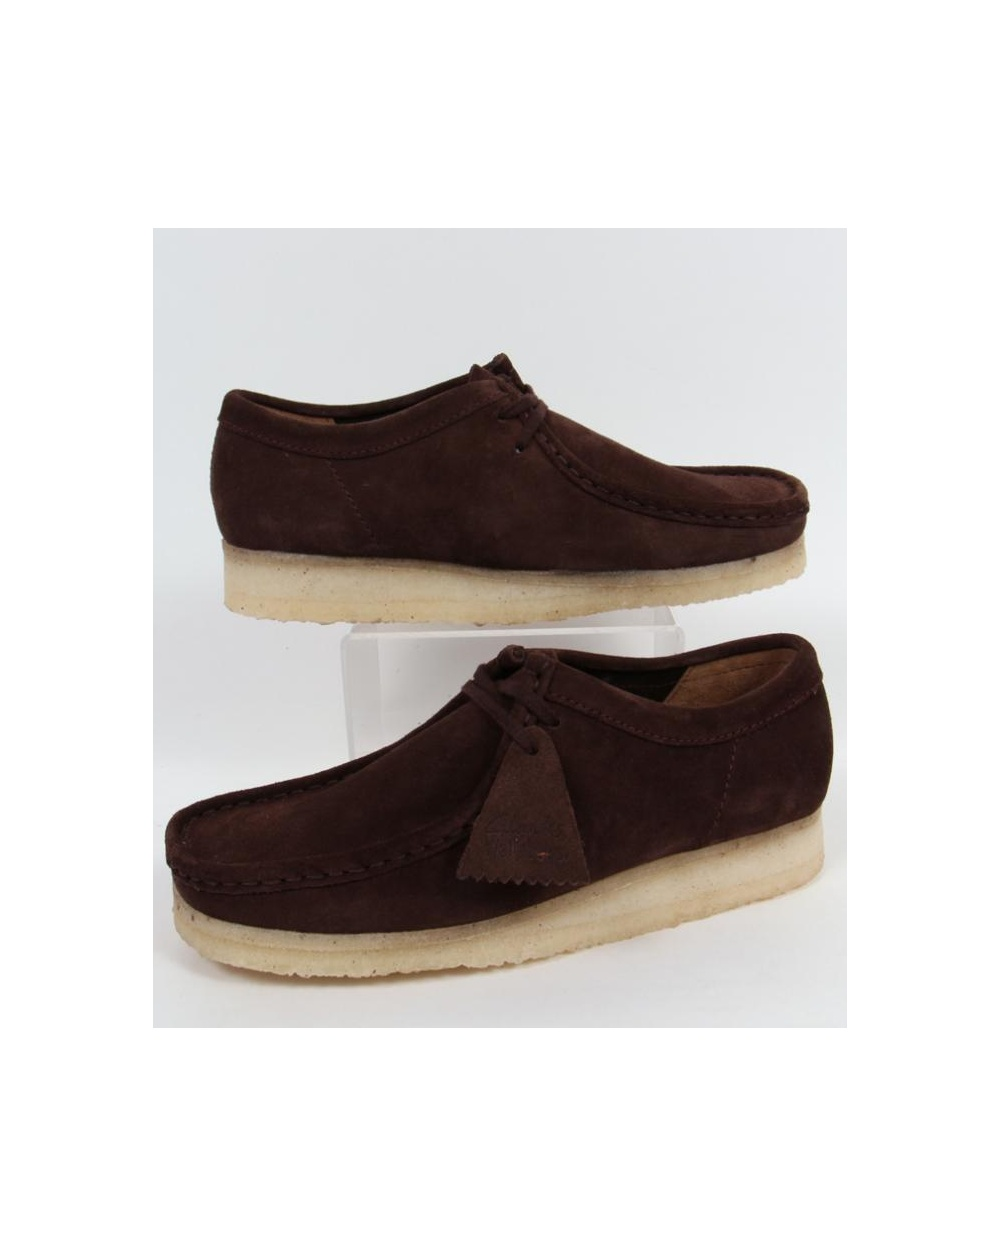 meticulous dyeing processes how to purchase select for clearance Clarks Originals Wallabee Shoe In Suede Dark Brown